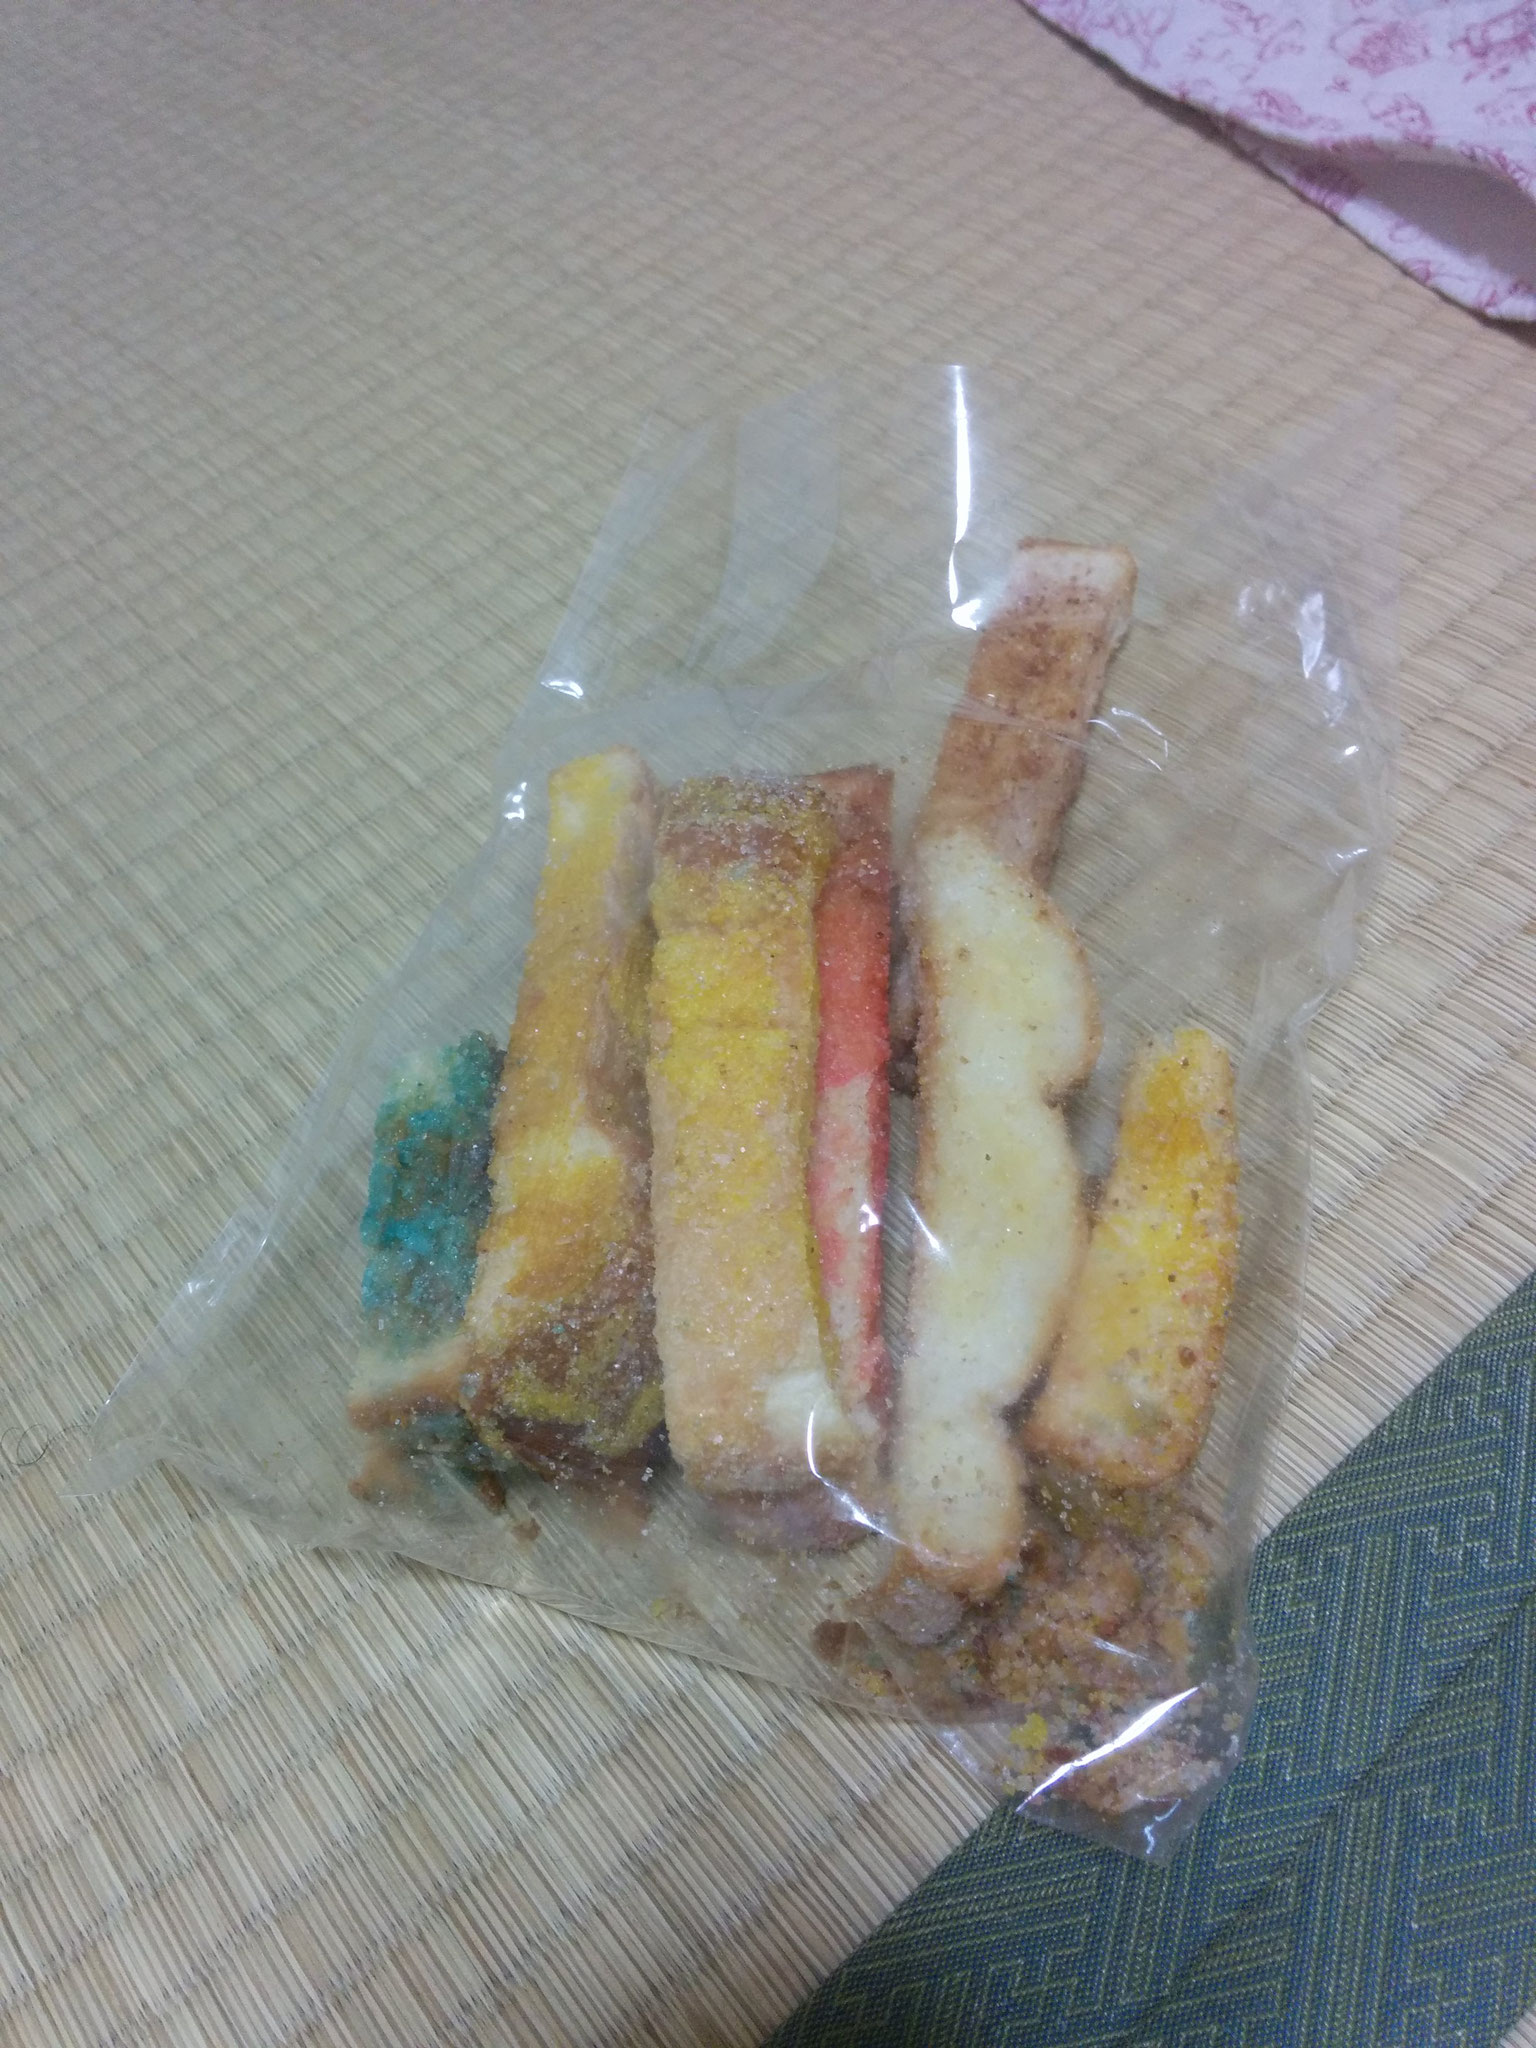 My friend made me rusk <3